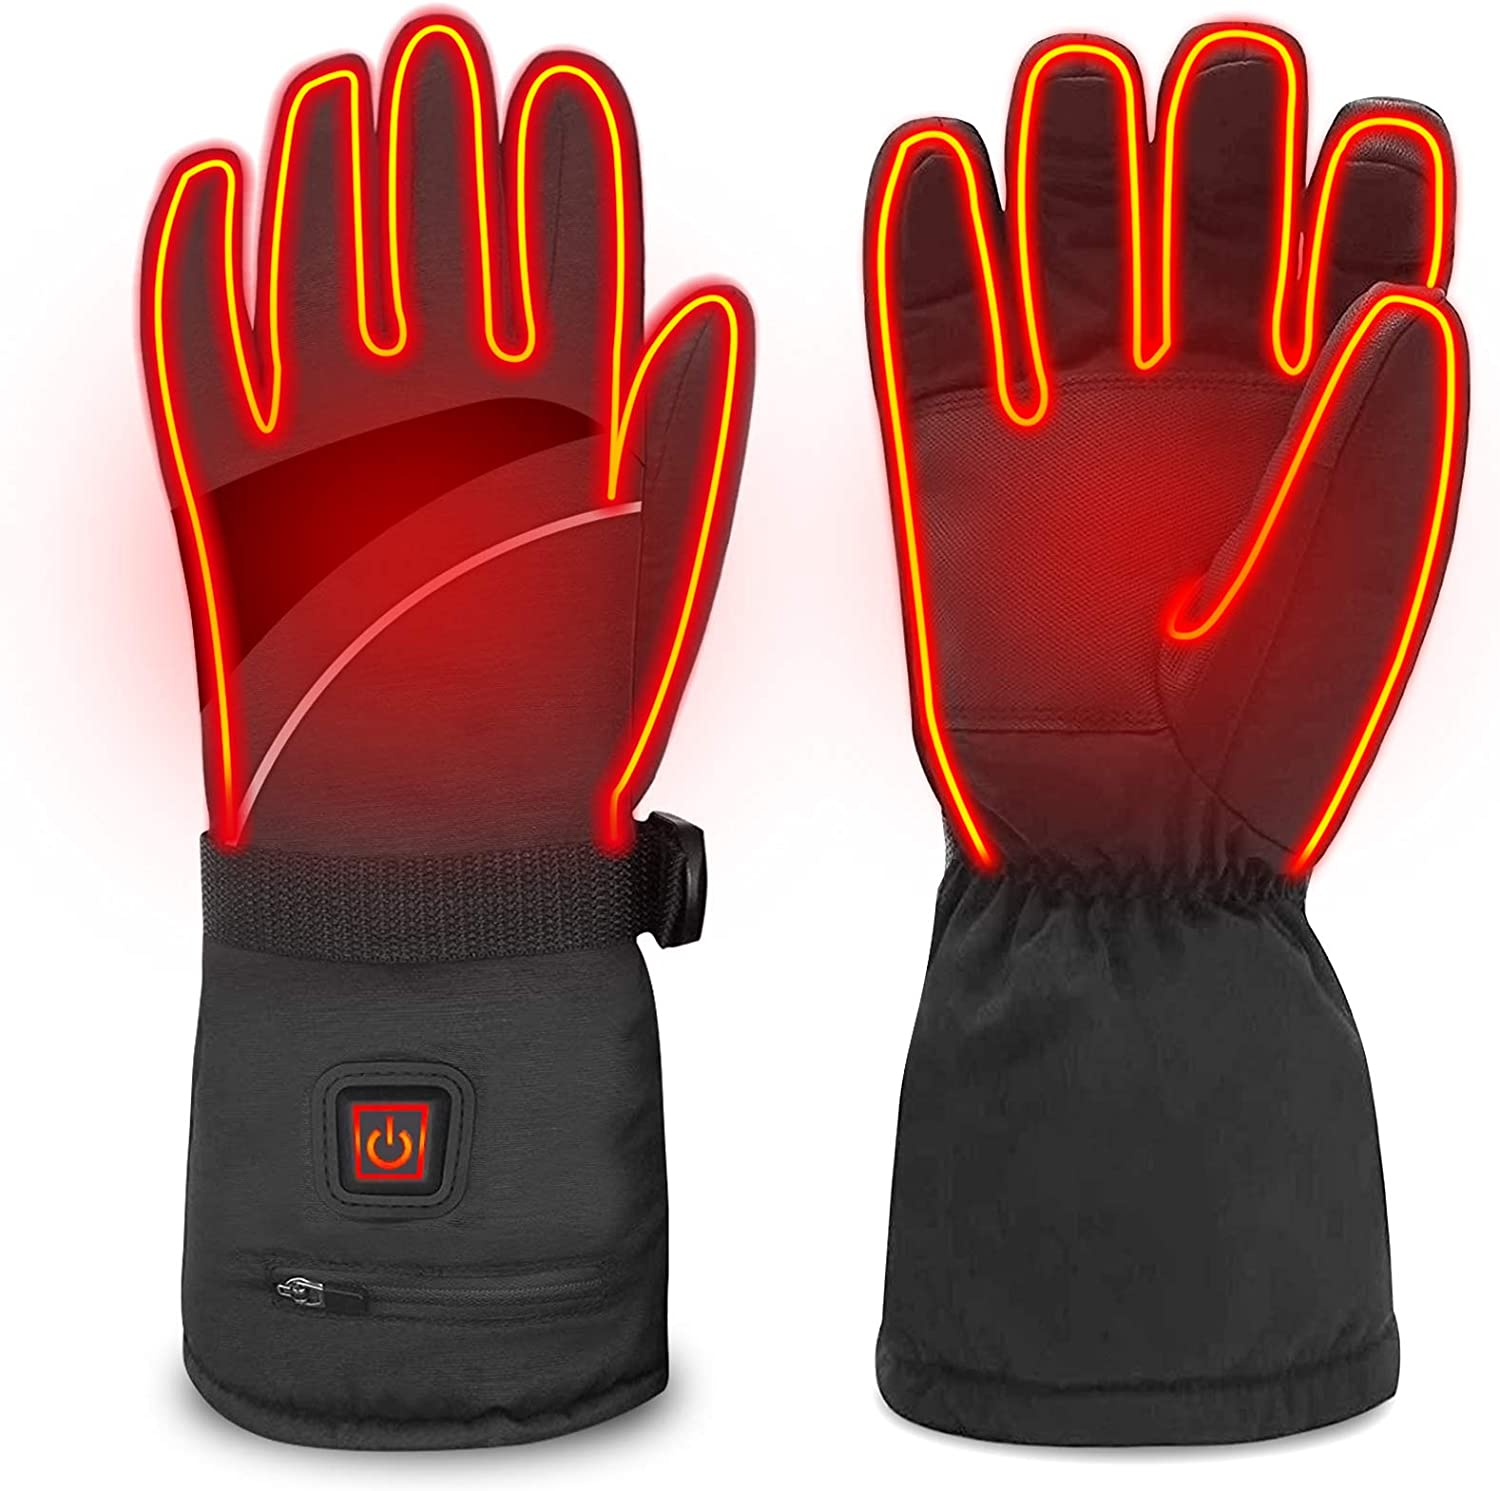 WAMTHUS Heated Gloves Electric for Complete Classic Free Shipping 3 Women Men Heating T